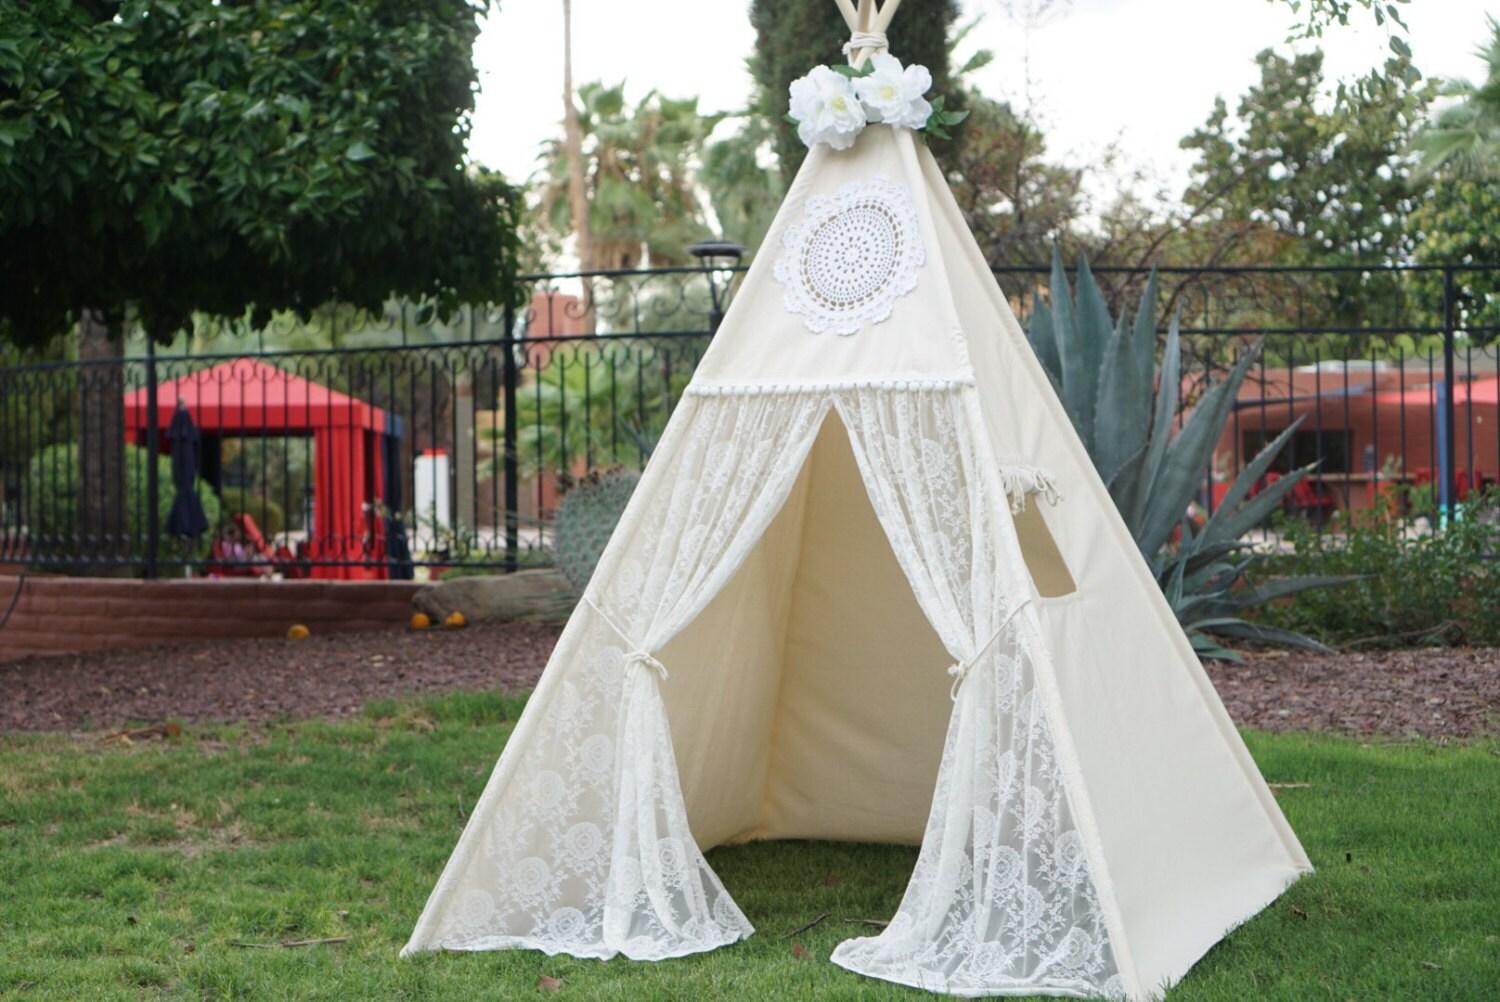 tente tipi dentelle vintage avec la nature toile enfants jouer. Black Bedroom Furniture Sets. Home Design Ideas